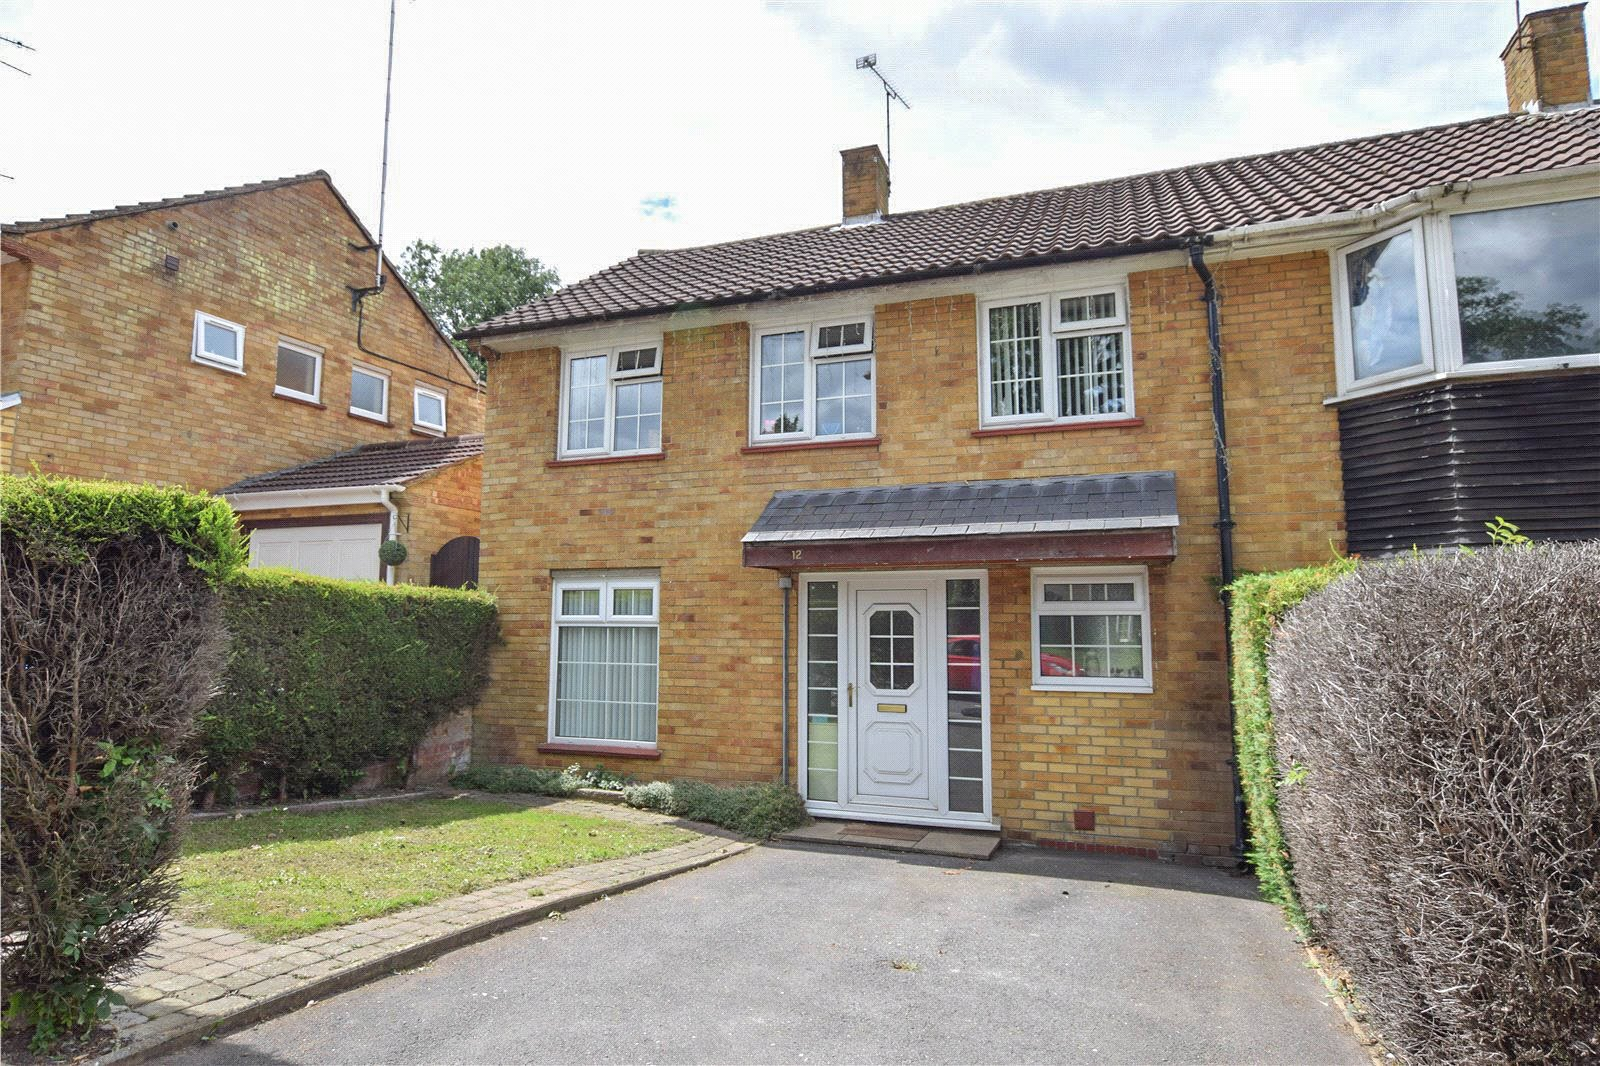 3 Bedrooms Semi Detached House for sale in Ralphs Ride, Bracknell, Berkshire, RG12